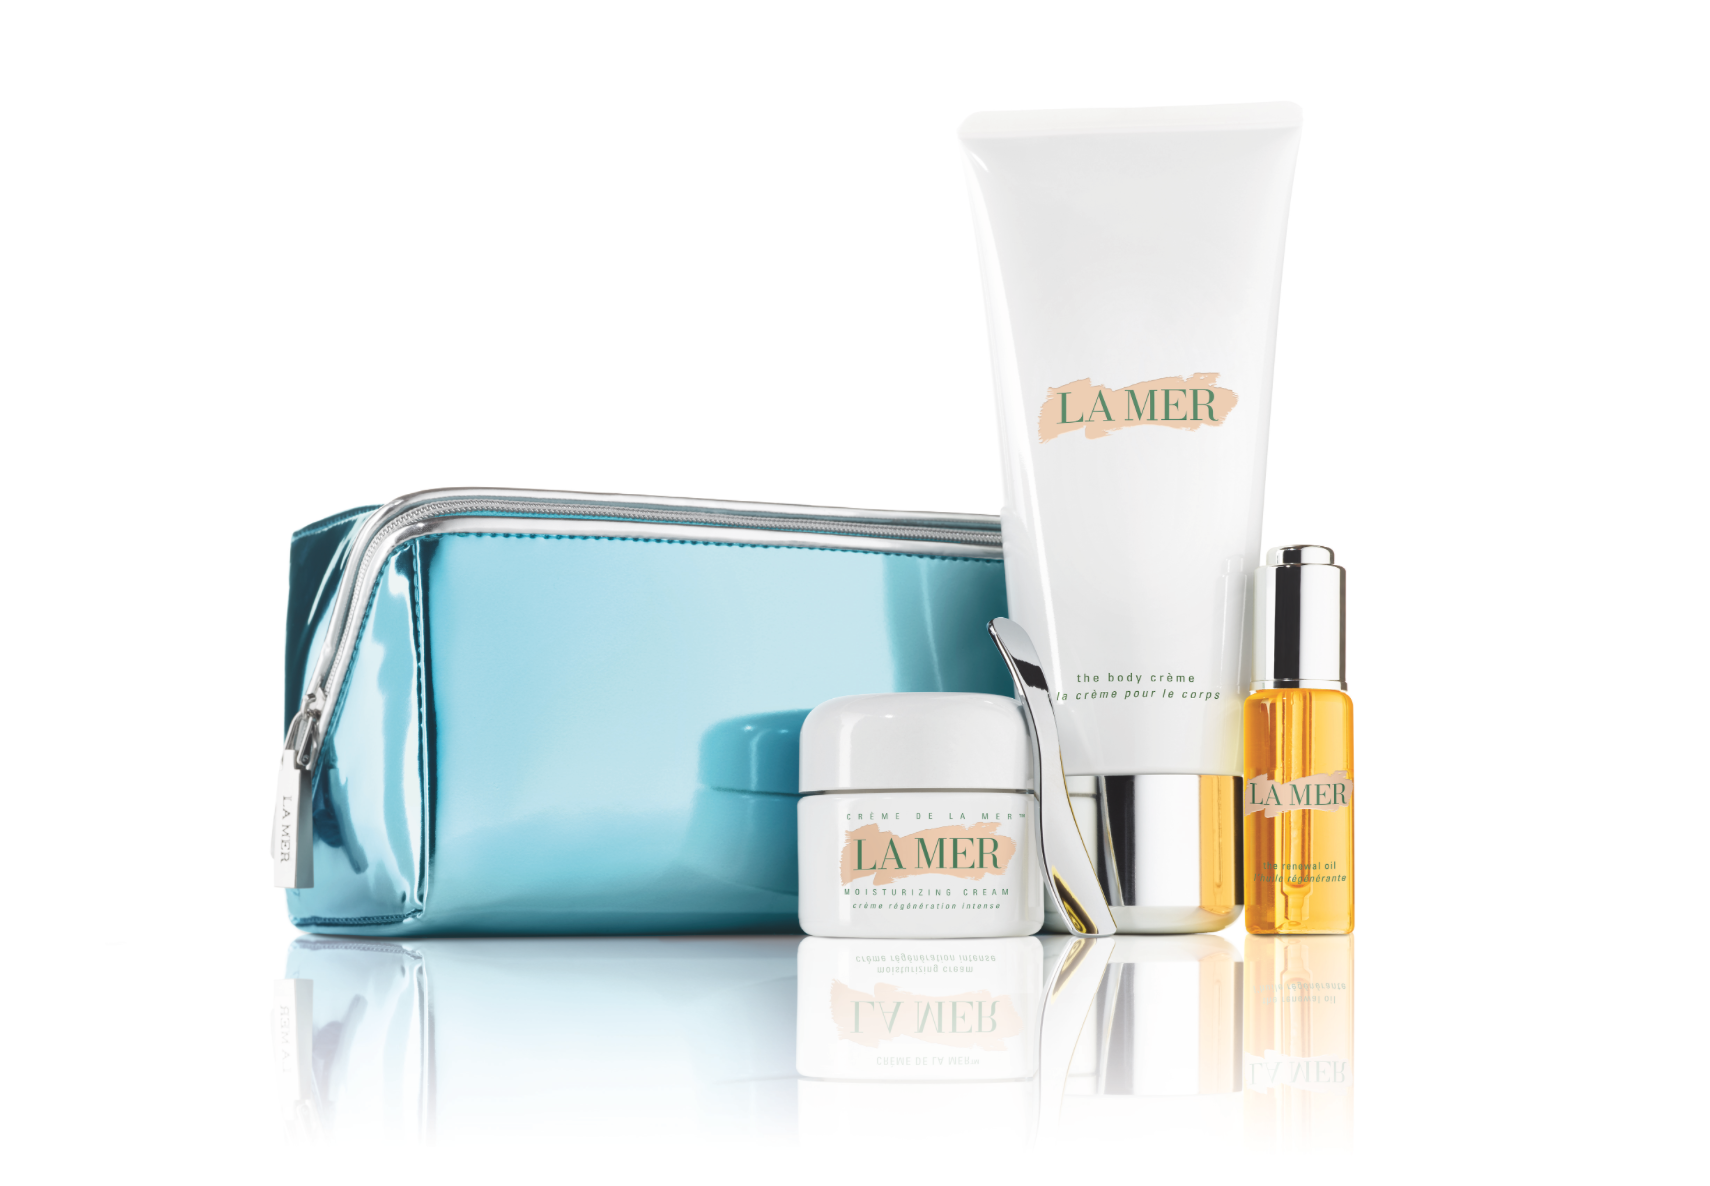 La mer THE SENSORIAL SENSATIONS